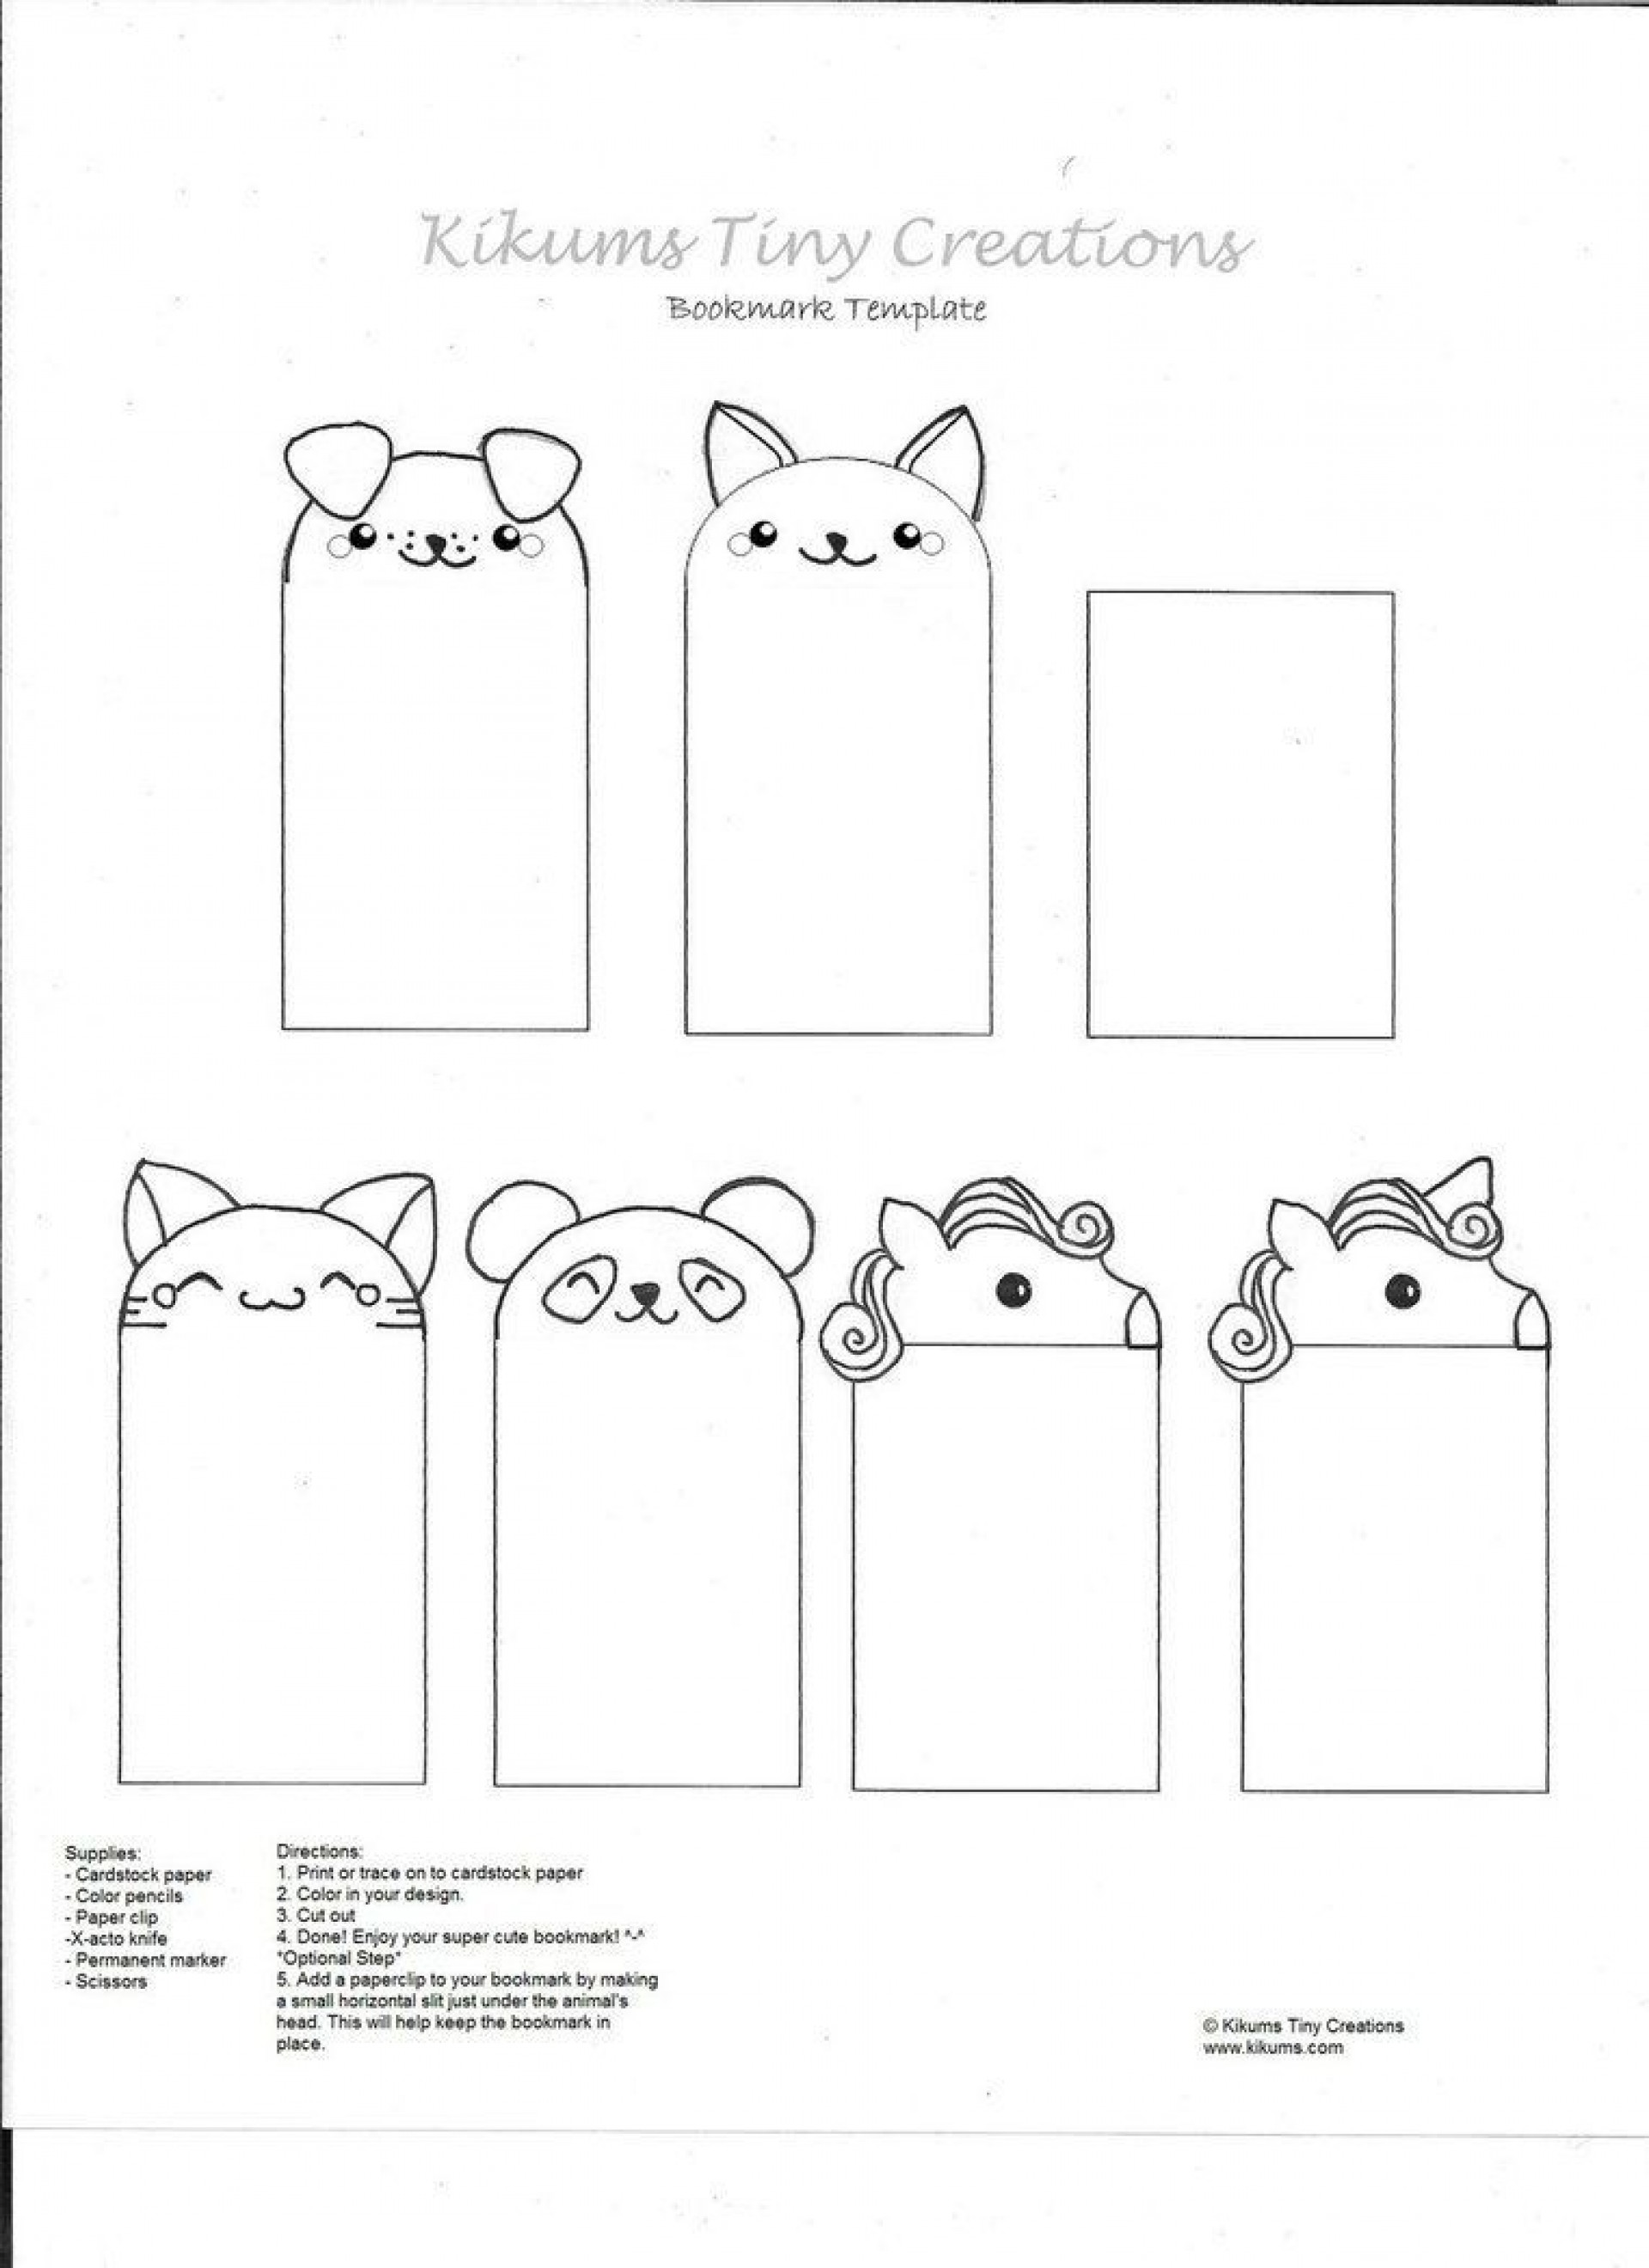 000 Unusual Free Printable Bookmark Template Highest Clarity  Templates Download Photo For Teacher1920